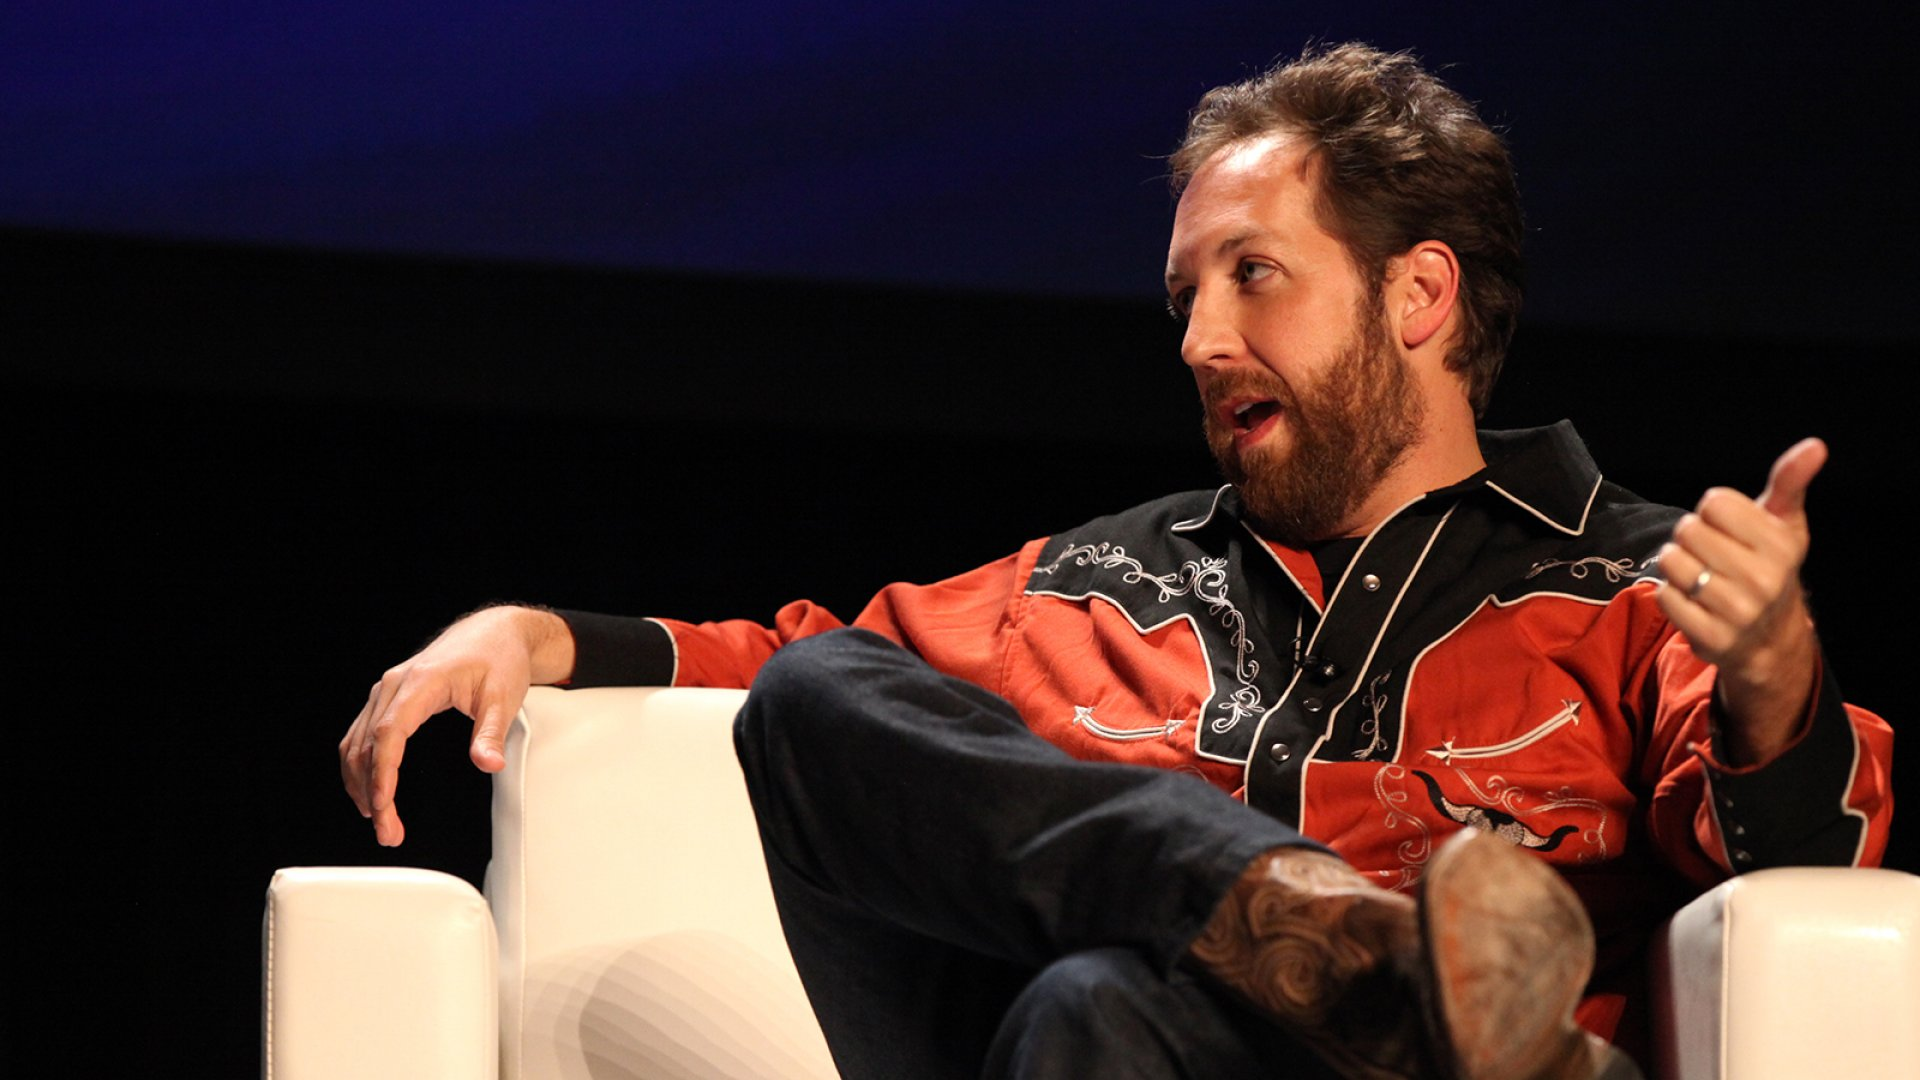 Chris Sacca Makes It Very Clear Whom He Doesn't Want You to Vote for